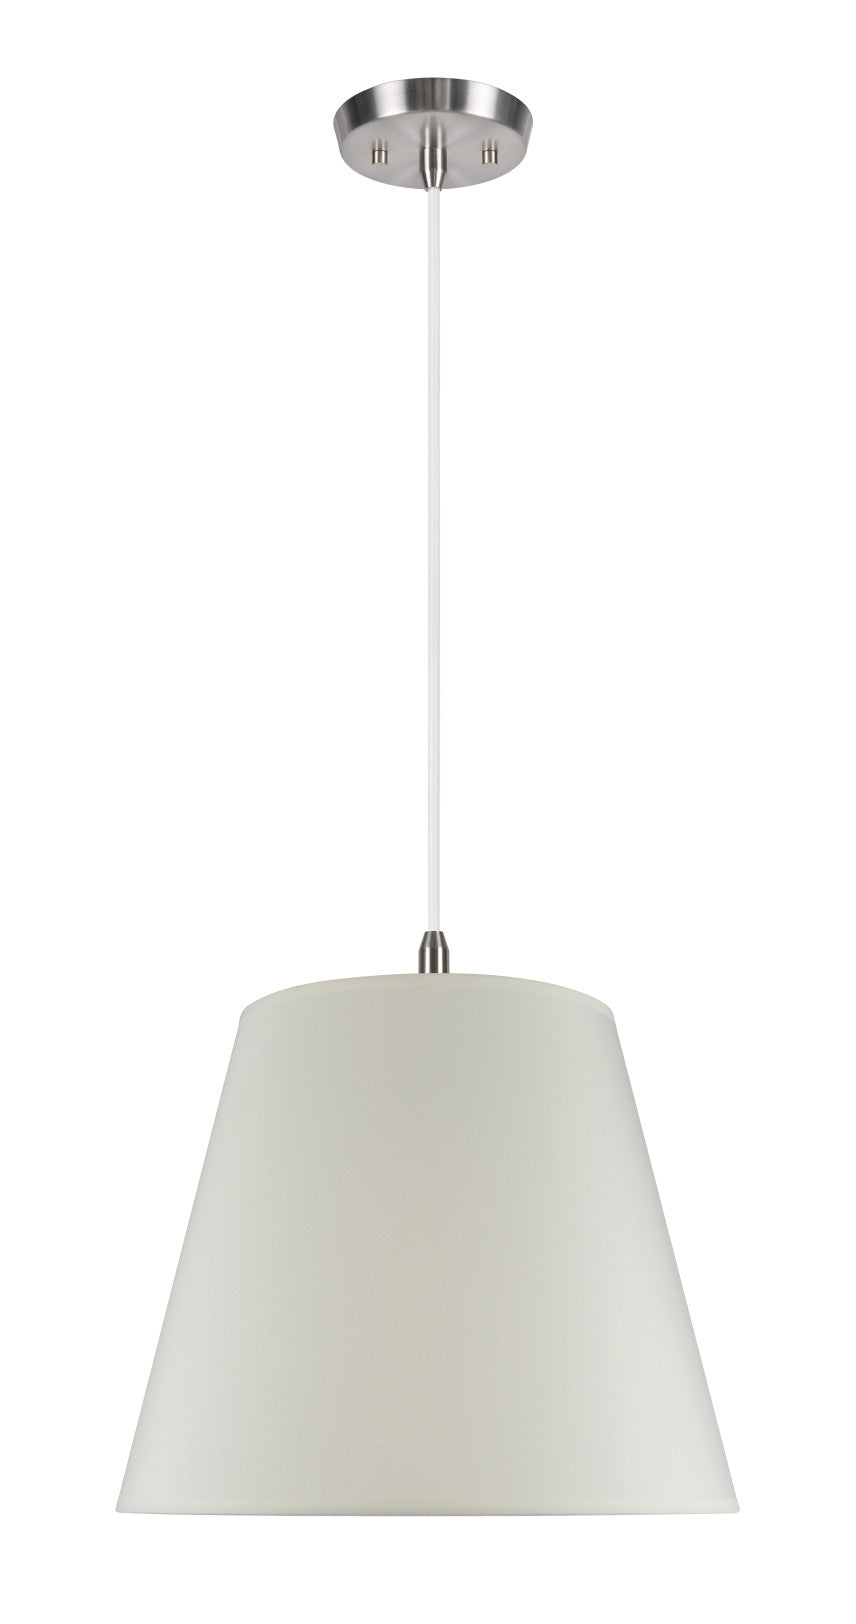 72027 2 light hanging pendant ceiling light with transitional hardback fabric lamp shade in ivory cotton 18 w